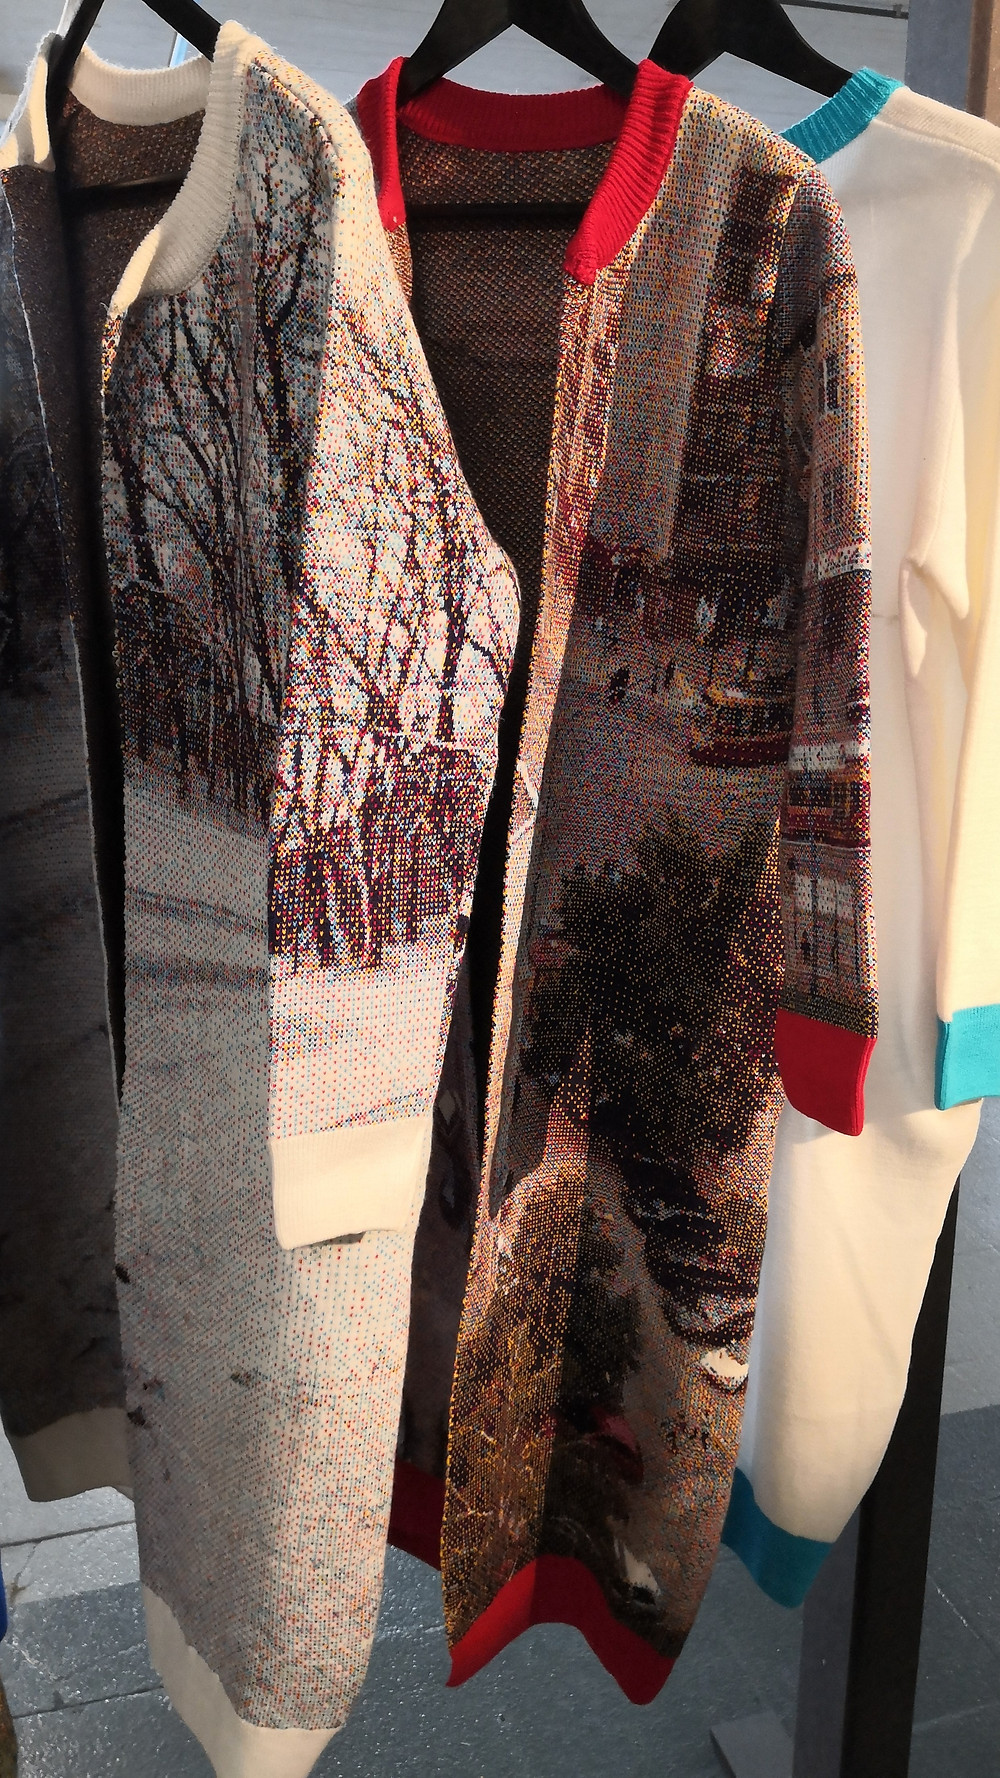 Two long cardigans with photographic images woven onto them.